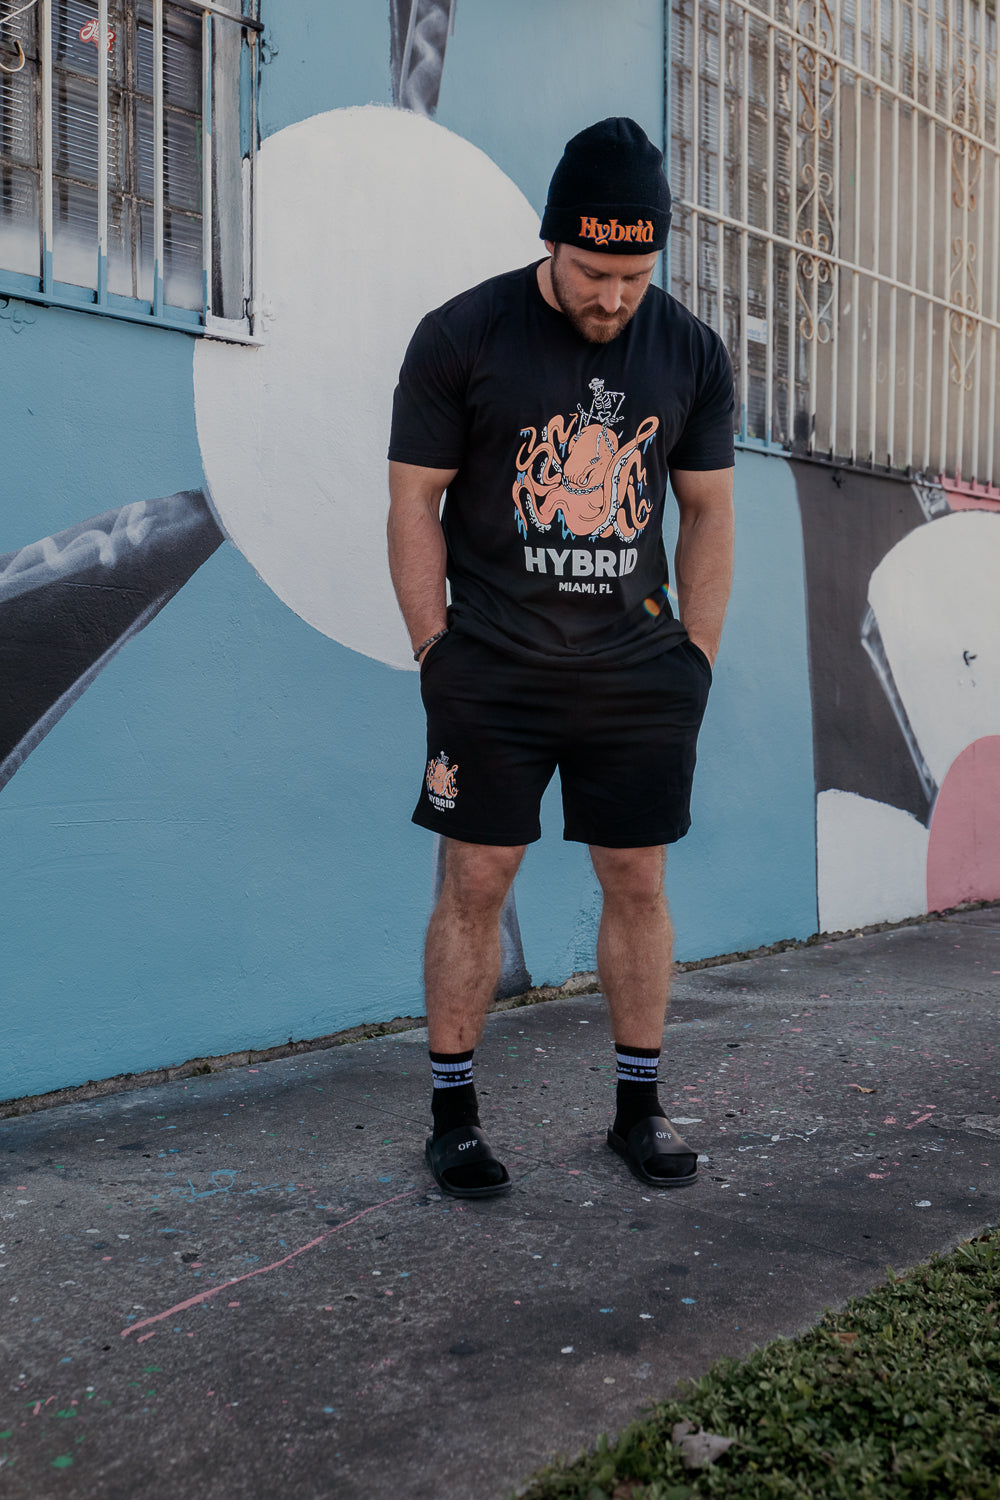 HYBRID Black Kraken Shorts